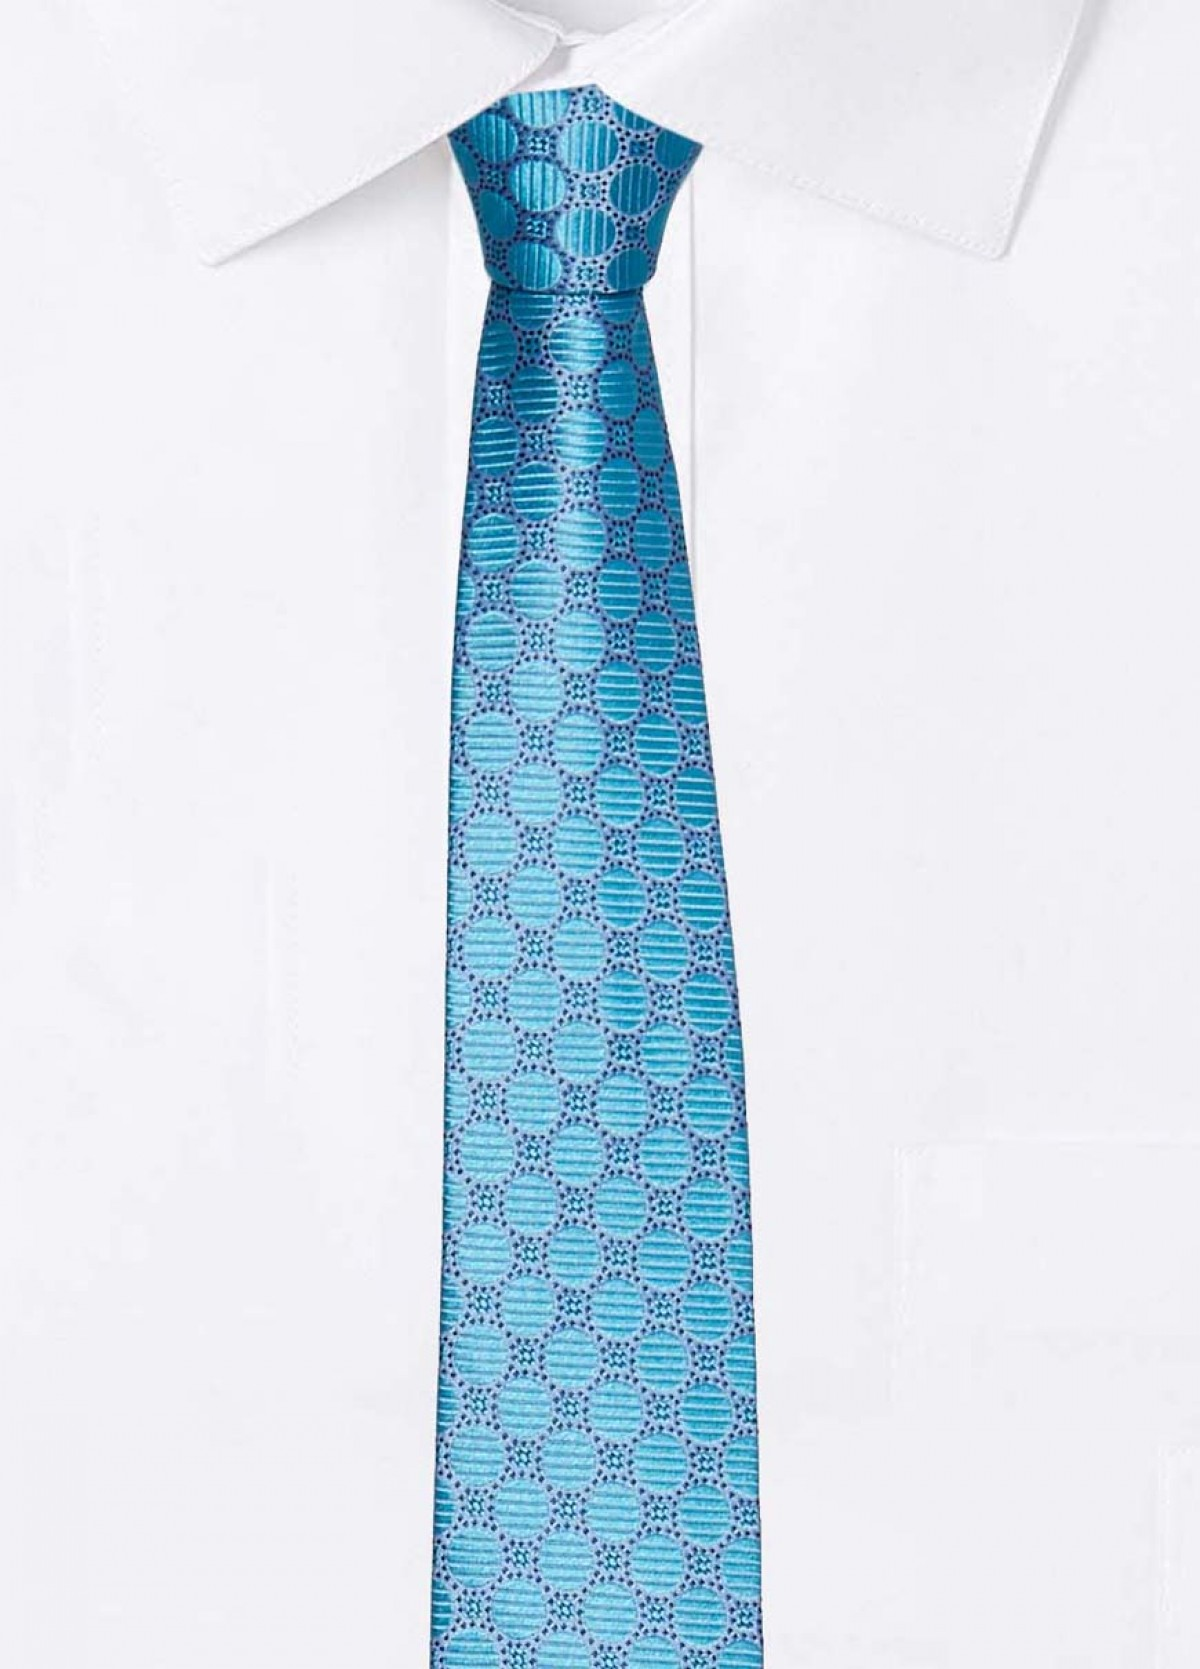 The Turquoise Stain Resistant Tie